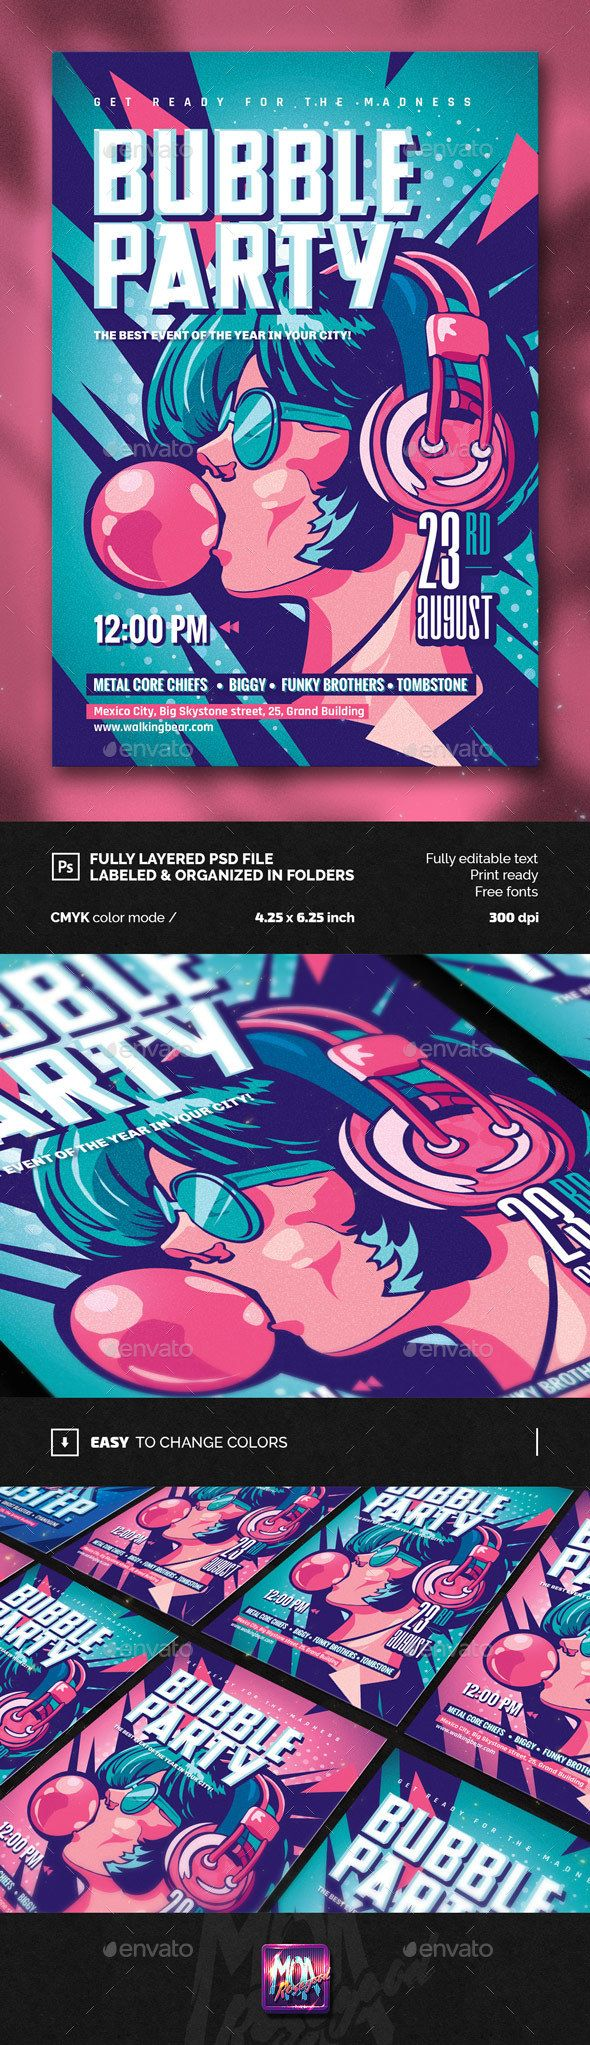 Bubble Party Flyer Template PSD. Download here: http://graphicriver.net/item/bubble-party-flyer/15273800?ref=ksioks